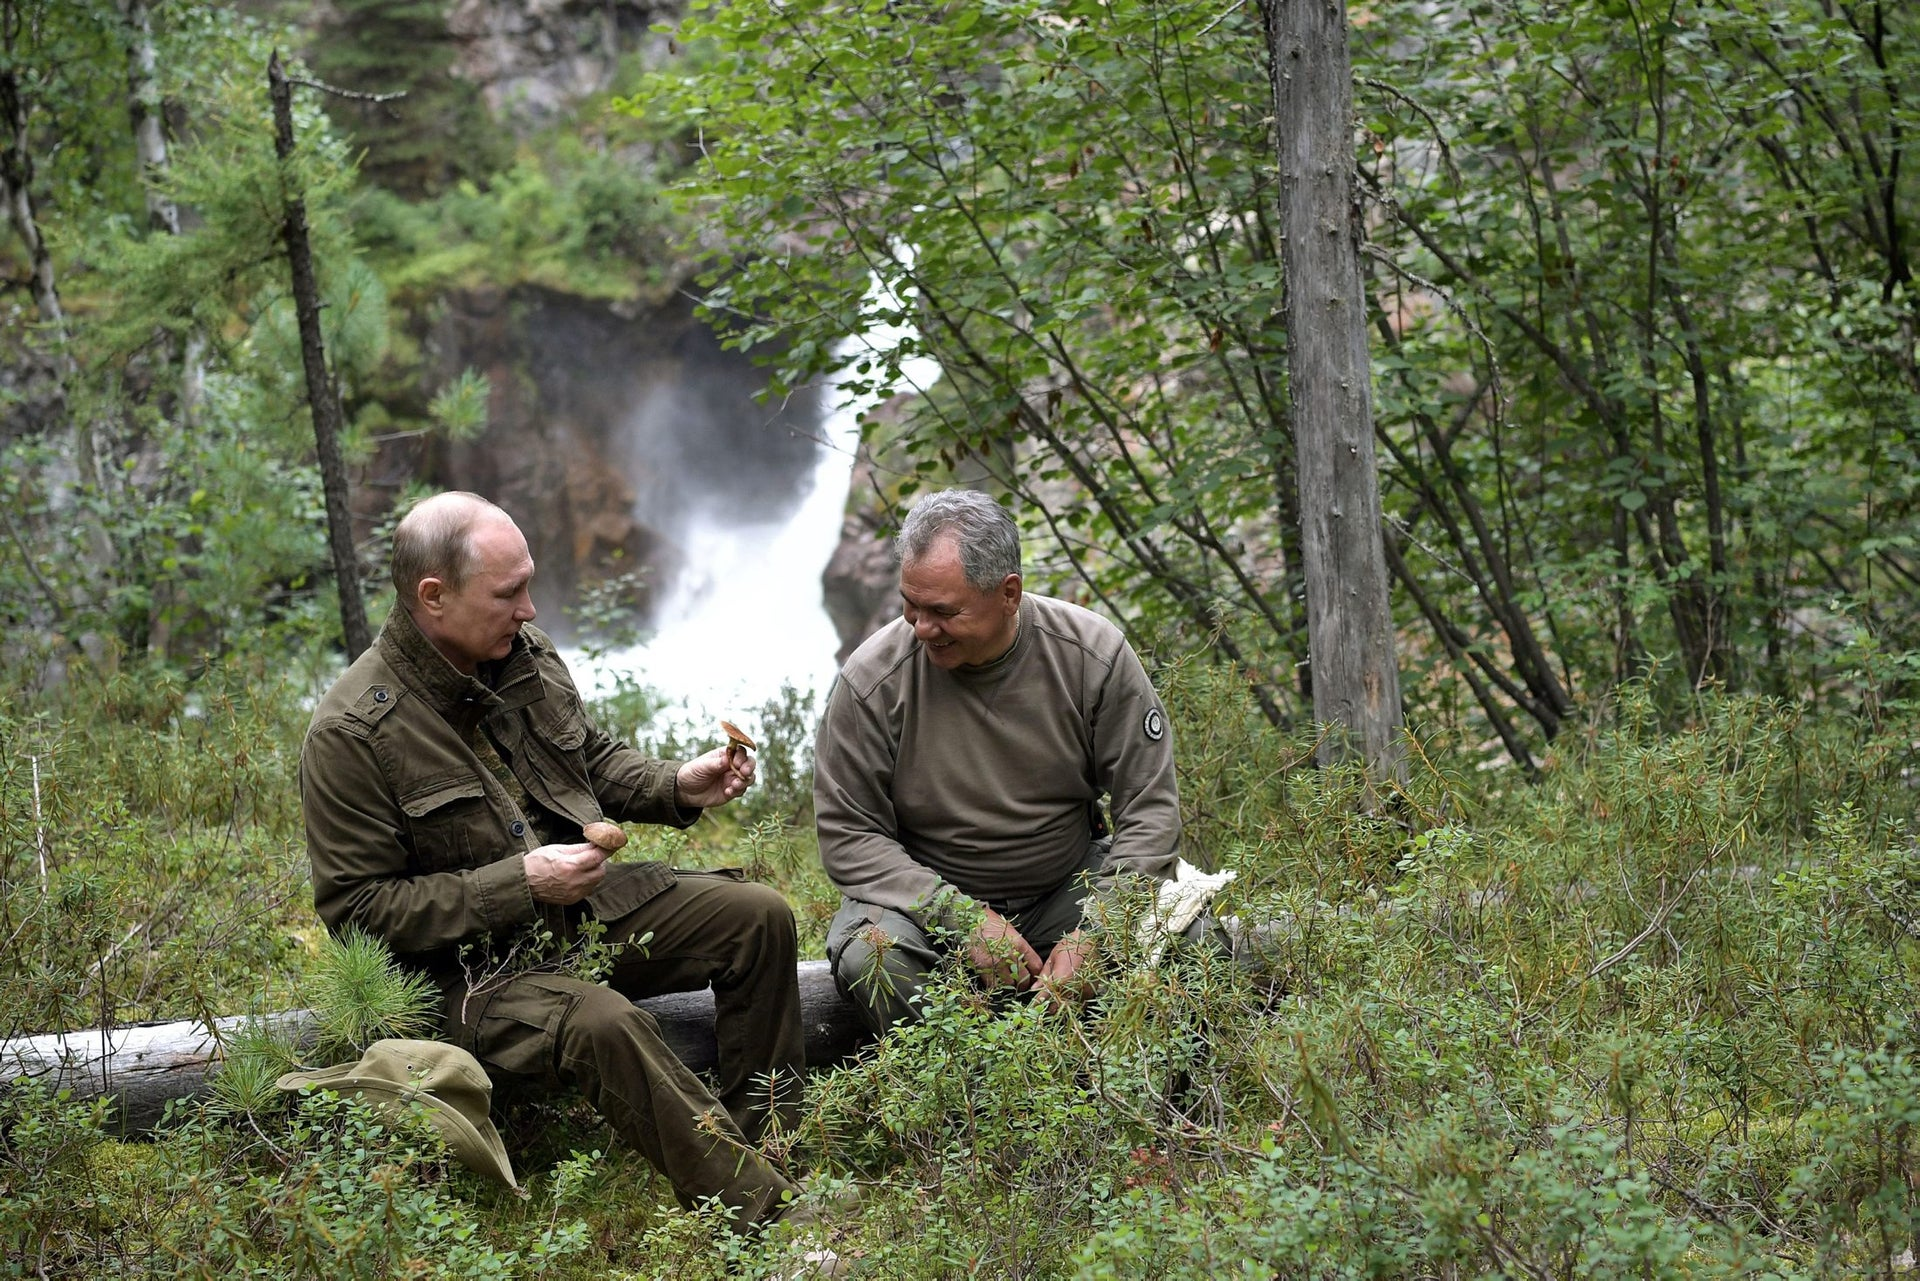 Russian President Vladimir Putin and Defense Minister Sergei Shoigu on a fishing trip which took place on August 1-3 in southern Siberia, Russia, in a photo released by the Kremlin on August 5, 2017.